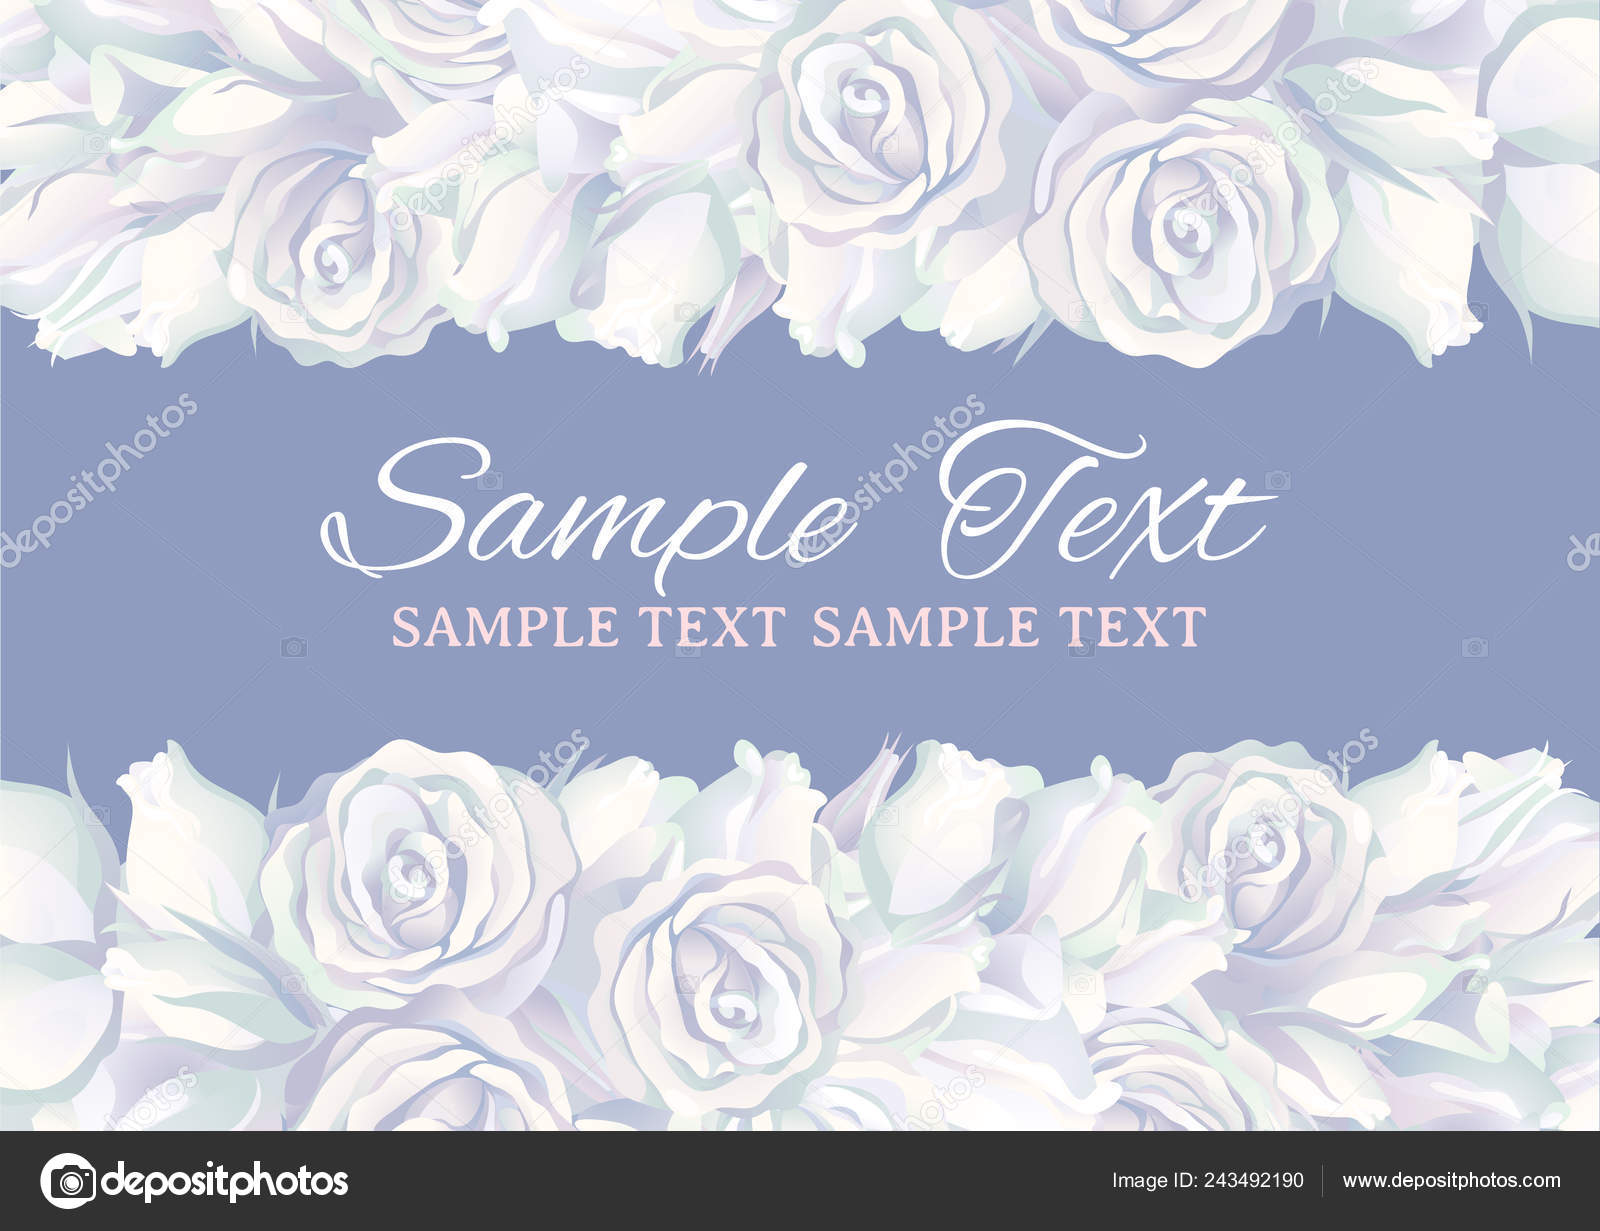 Floral Border Many White Roses Vector Template Flowers Gray ...